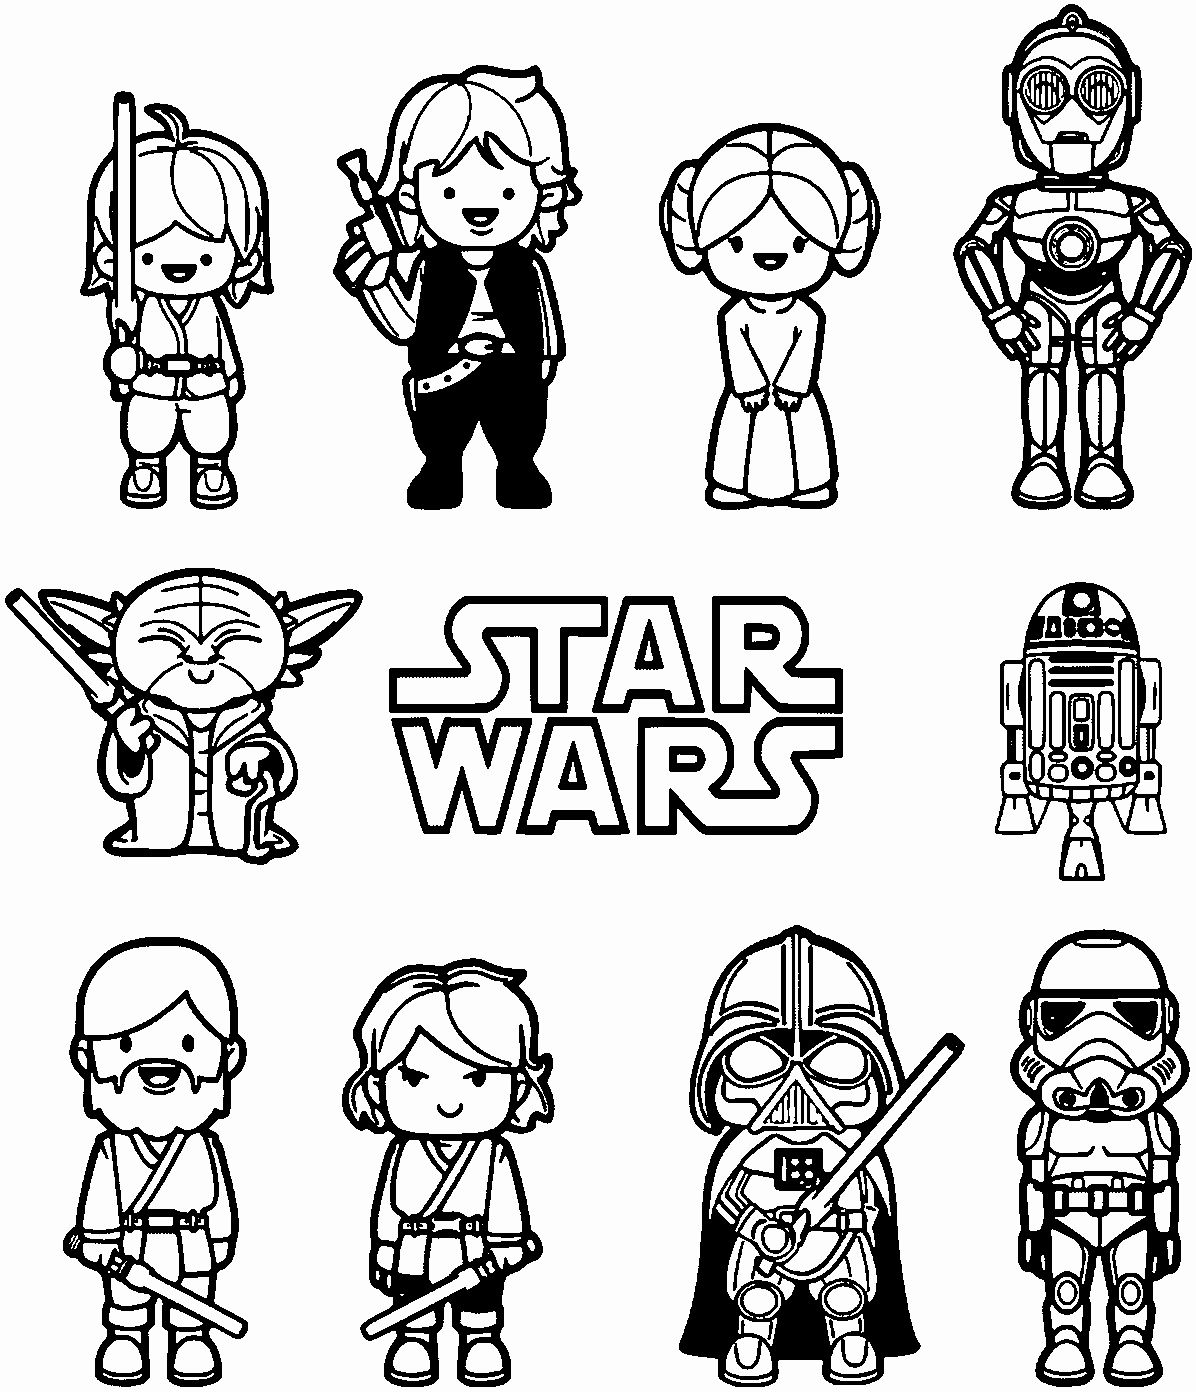 Darth Vader Coloring Book Lovely Star Wars Coloring Pages Luke Skywalker Star Wars Coloring In 2020 Star Wars Coloring Book Star Wars Colors Star Wars Kids